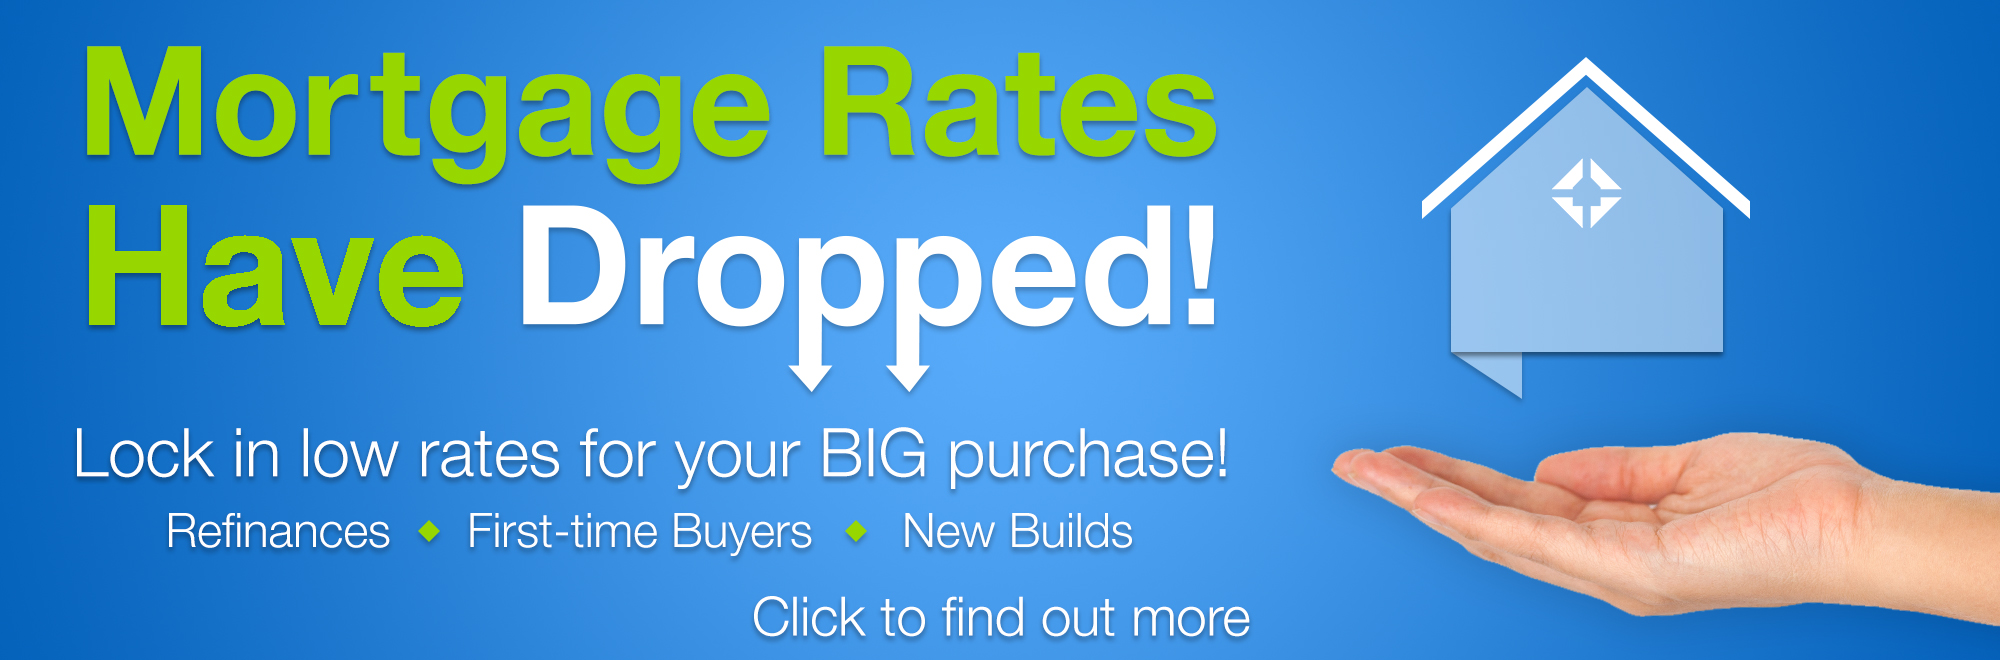 """Mortgage Rates Have Dropped! Lock in low rates for your big purchase!"""